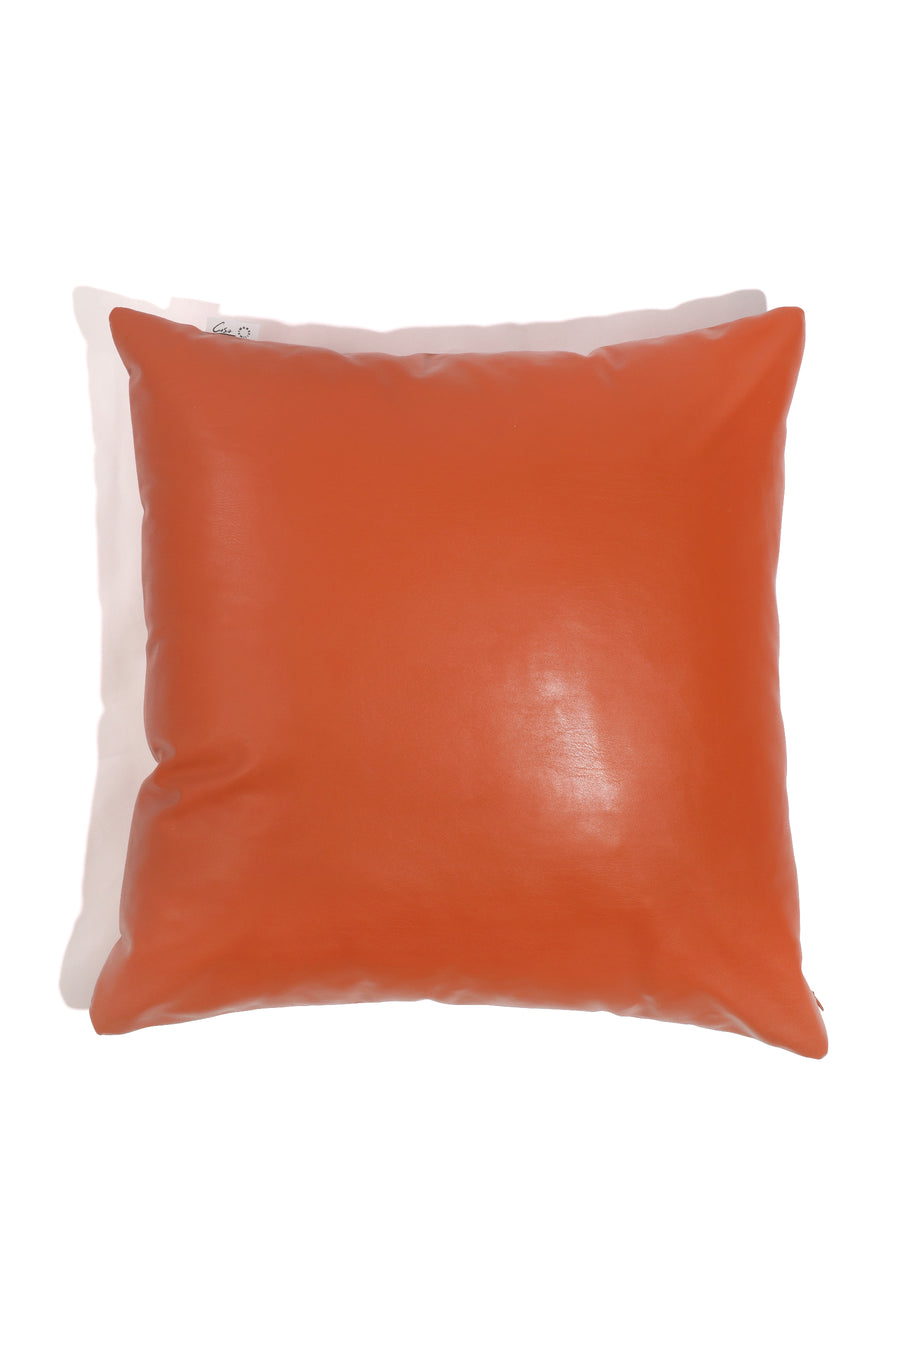 CaSa Vegan Leather Square Pillow in Squash